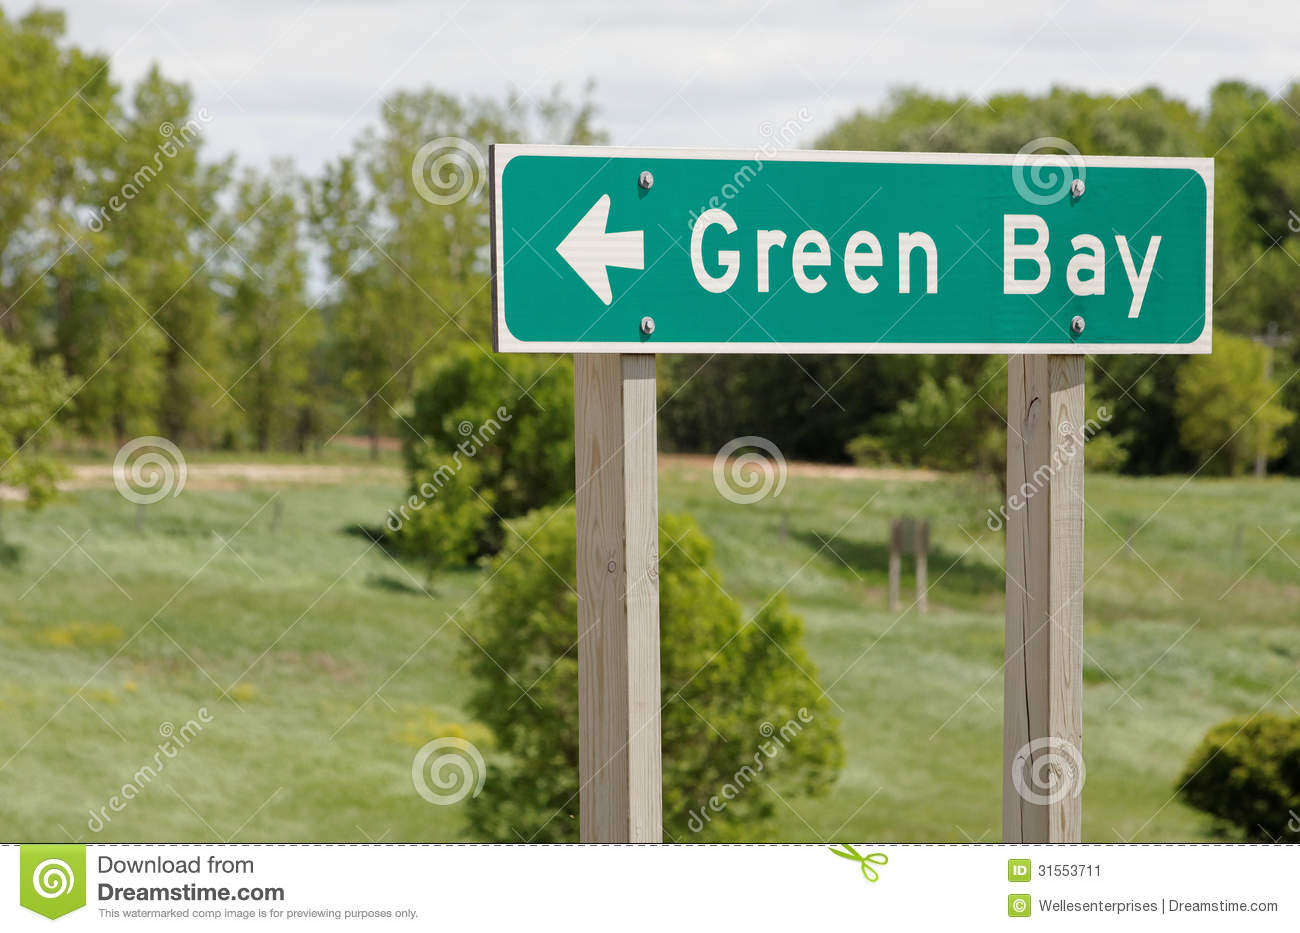 Green Bay Stock Image  Image 31553711. Flood Signs Of Stroke. Line Signs. Wiccan Signs Of Stroke. Alpha Phi Signs. Safty Signs Of Stroke. Mosaic Signs. Eucharist Signs. Traffic Signal Signs Of Stroke